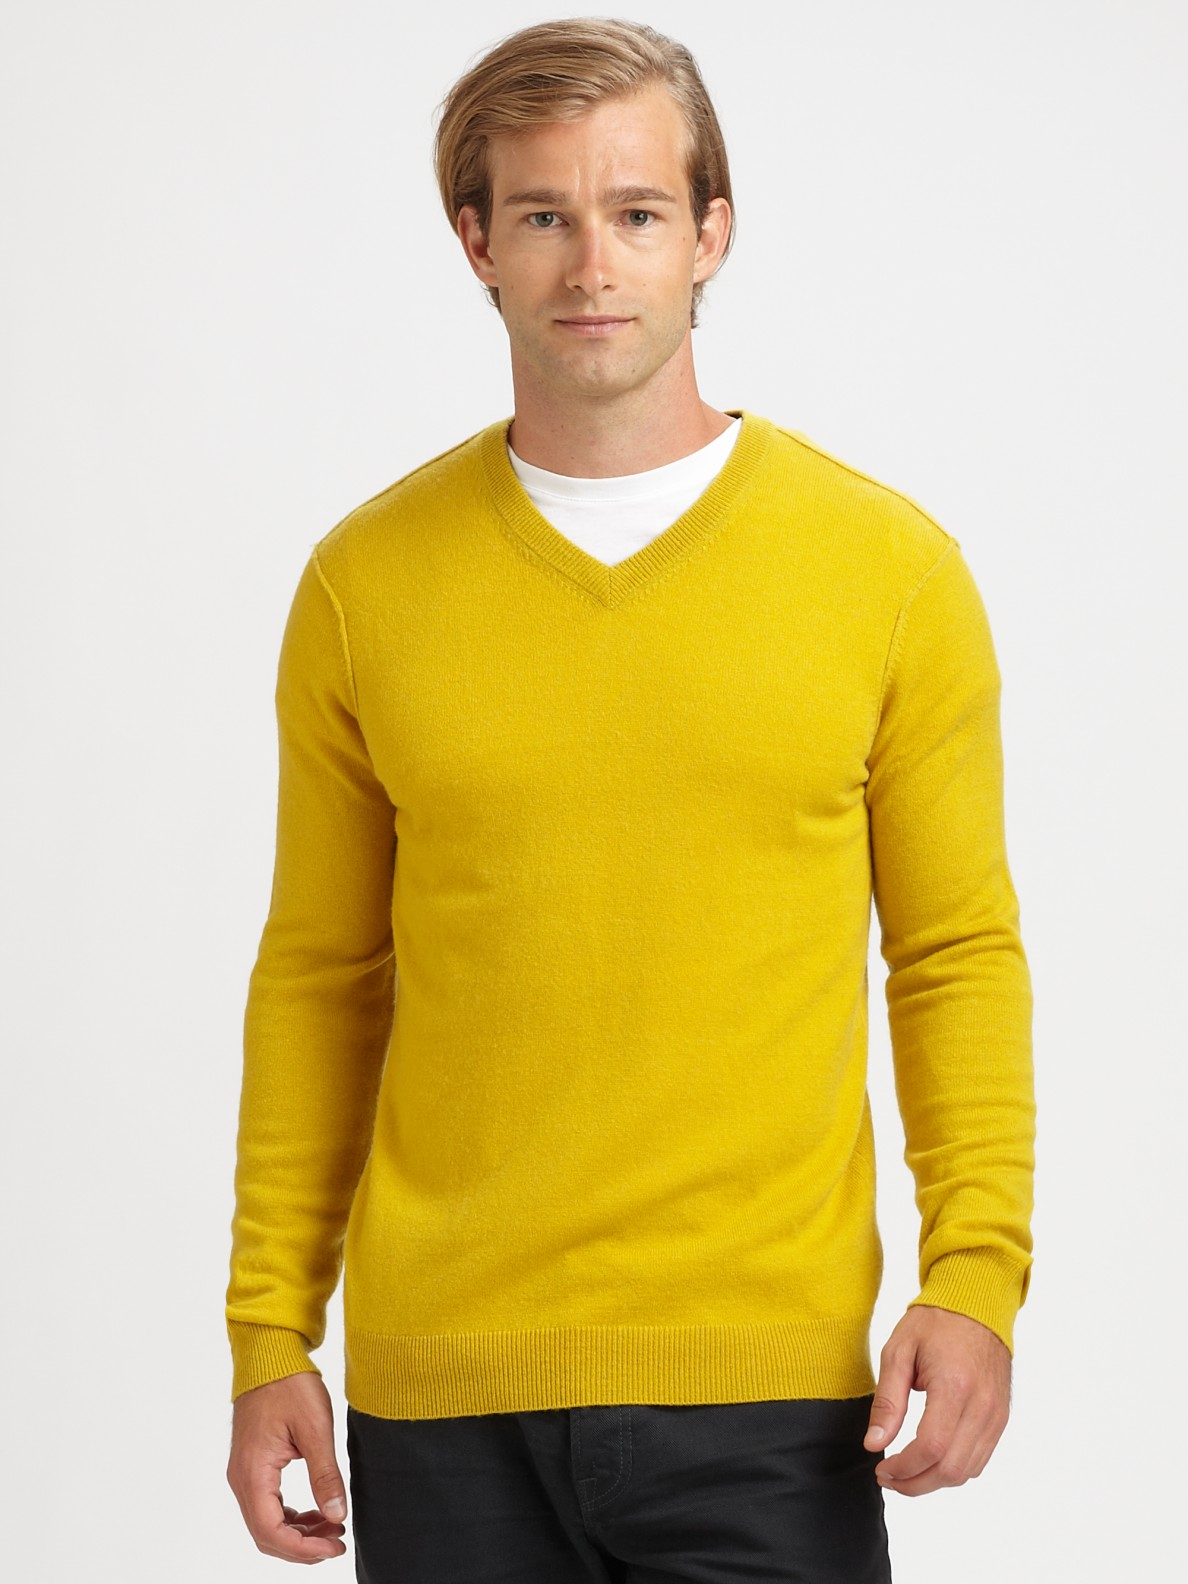 Mens V Neck Sweaters Spend your days relaxing with men's V-neck sweaters. Perfect for dressing up or staying around the house, a sweater will complement the shirts and pants you already have while keeping your clothes in fashion.